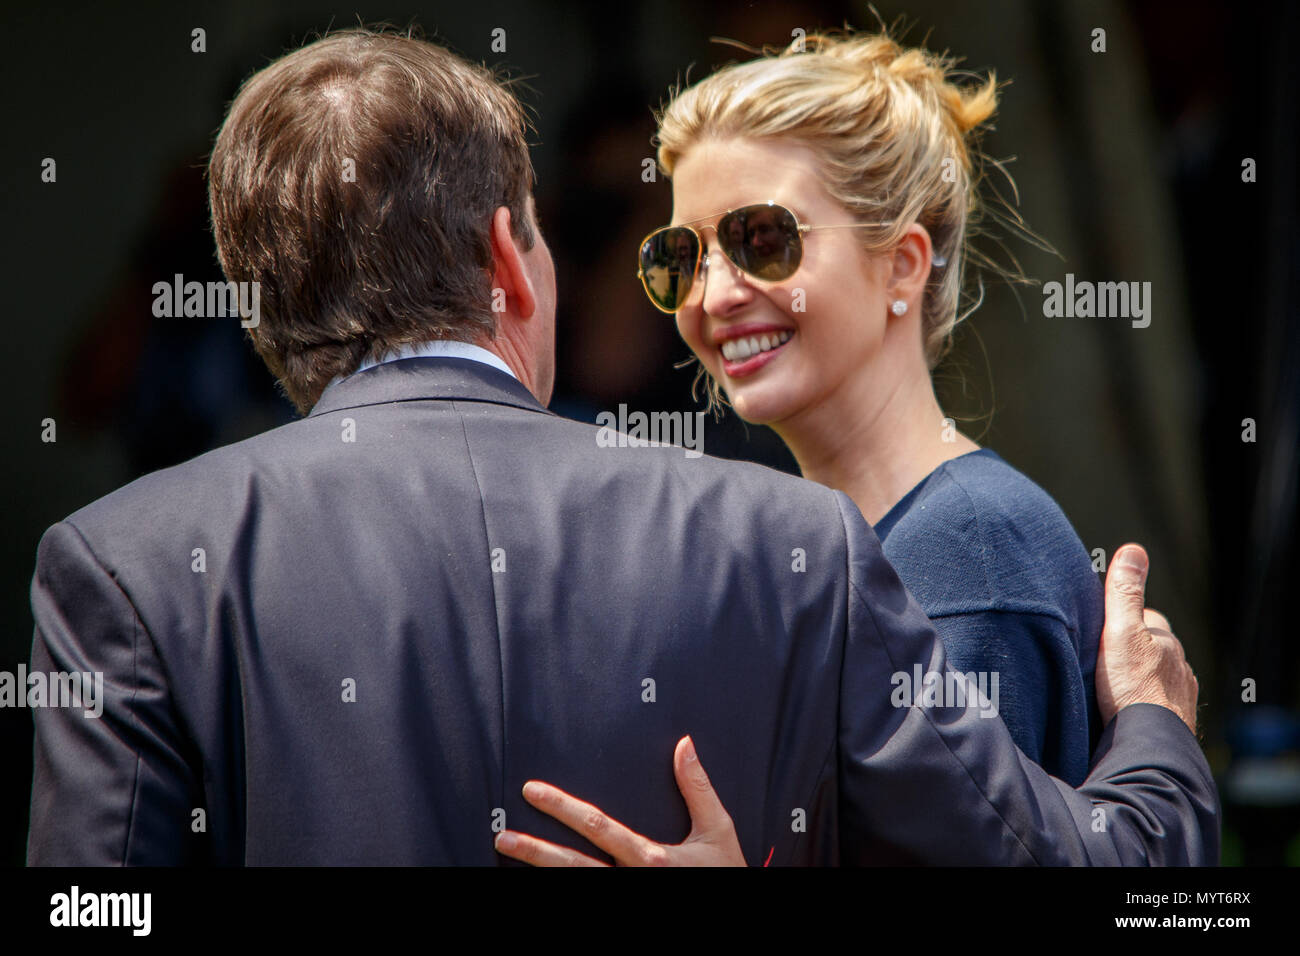 Washington DC, USA. 7th June, 2018. Ivanka Trump, daughter of and advisor to President Donald Trump, arrives for a press conference with Japanese Prime Minister Shinzo Abe. Credit: Michael Candelori/Alamy Live News - Stock Image